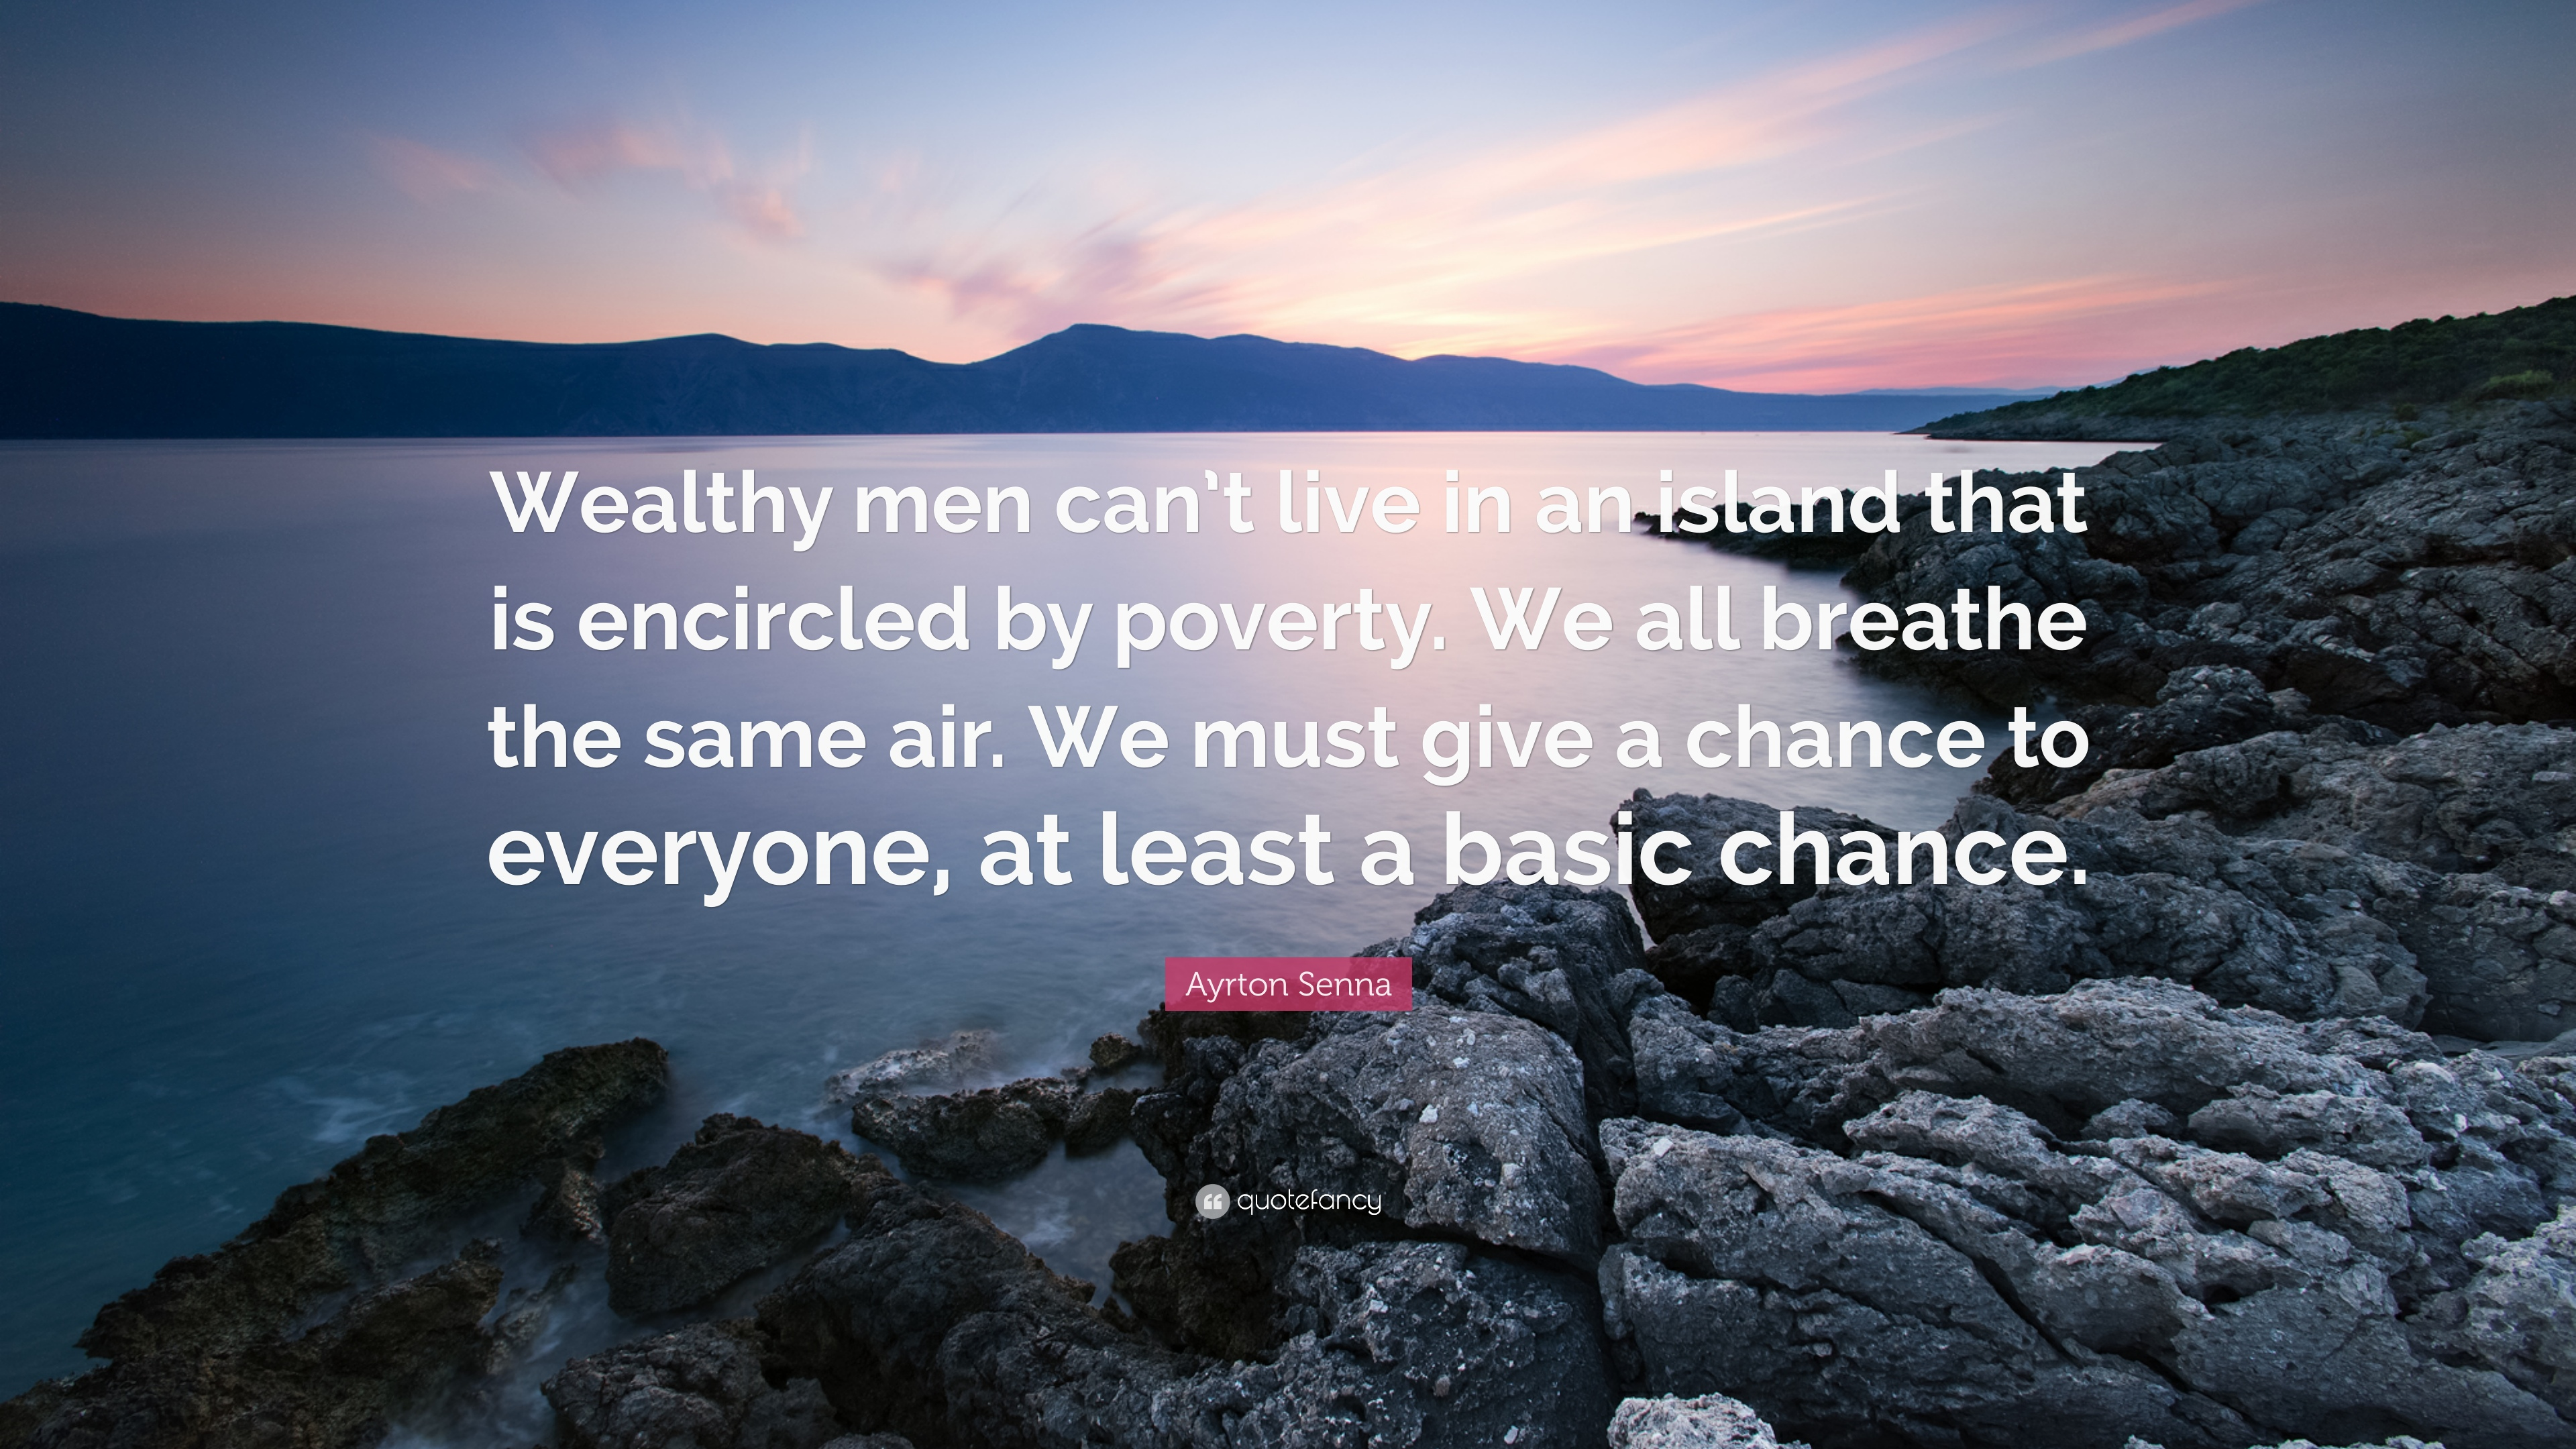 Image result for Wealthy men can't live in an island that is encircled by poverty. We all breathe the same air. We must give a chance to everyone, at least a basic chance.